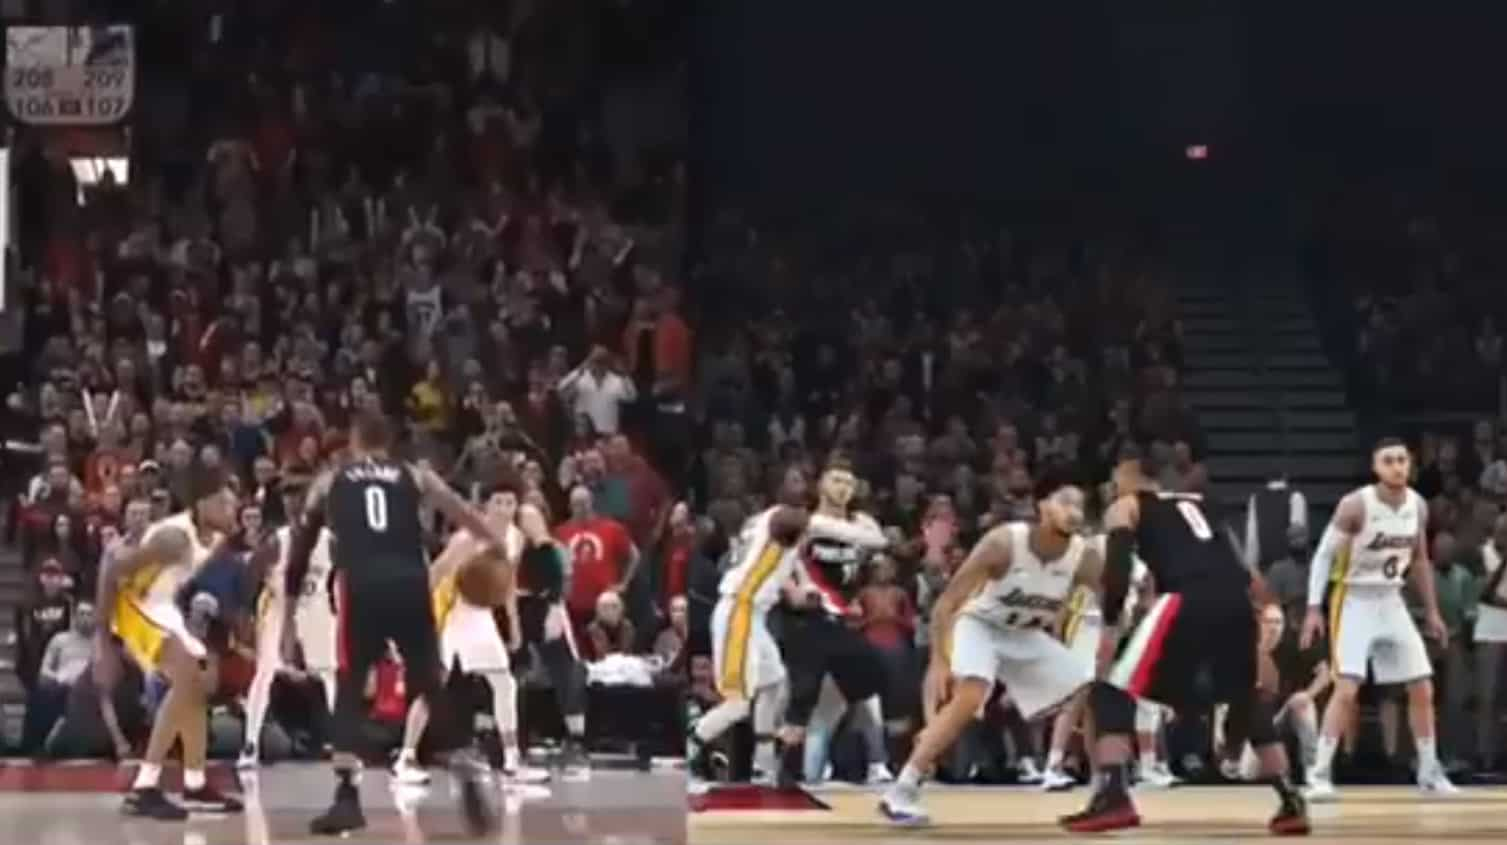 Le game winner de Damian Lillard recréé à la perfection sur NBA 2K18